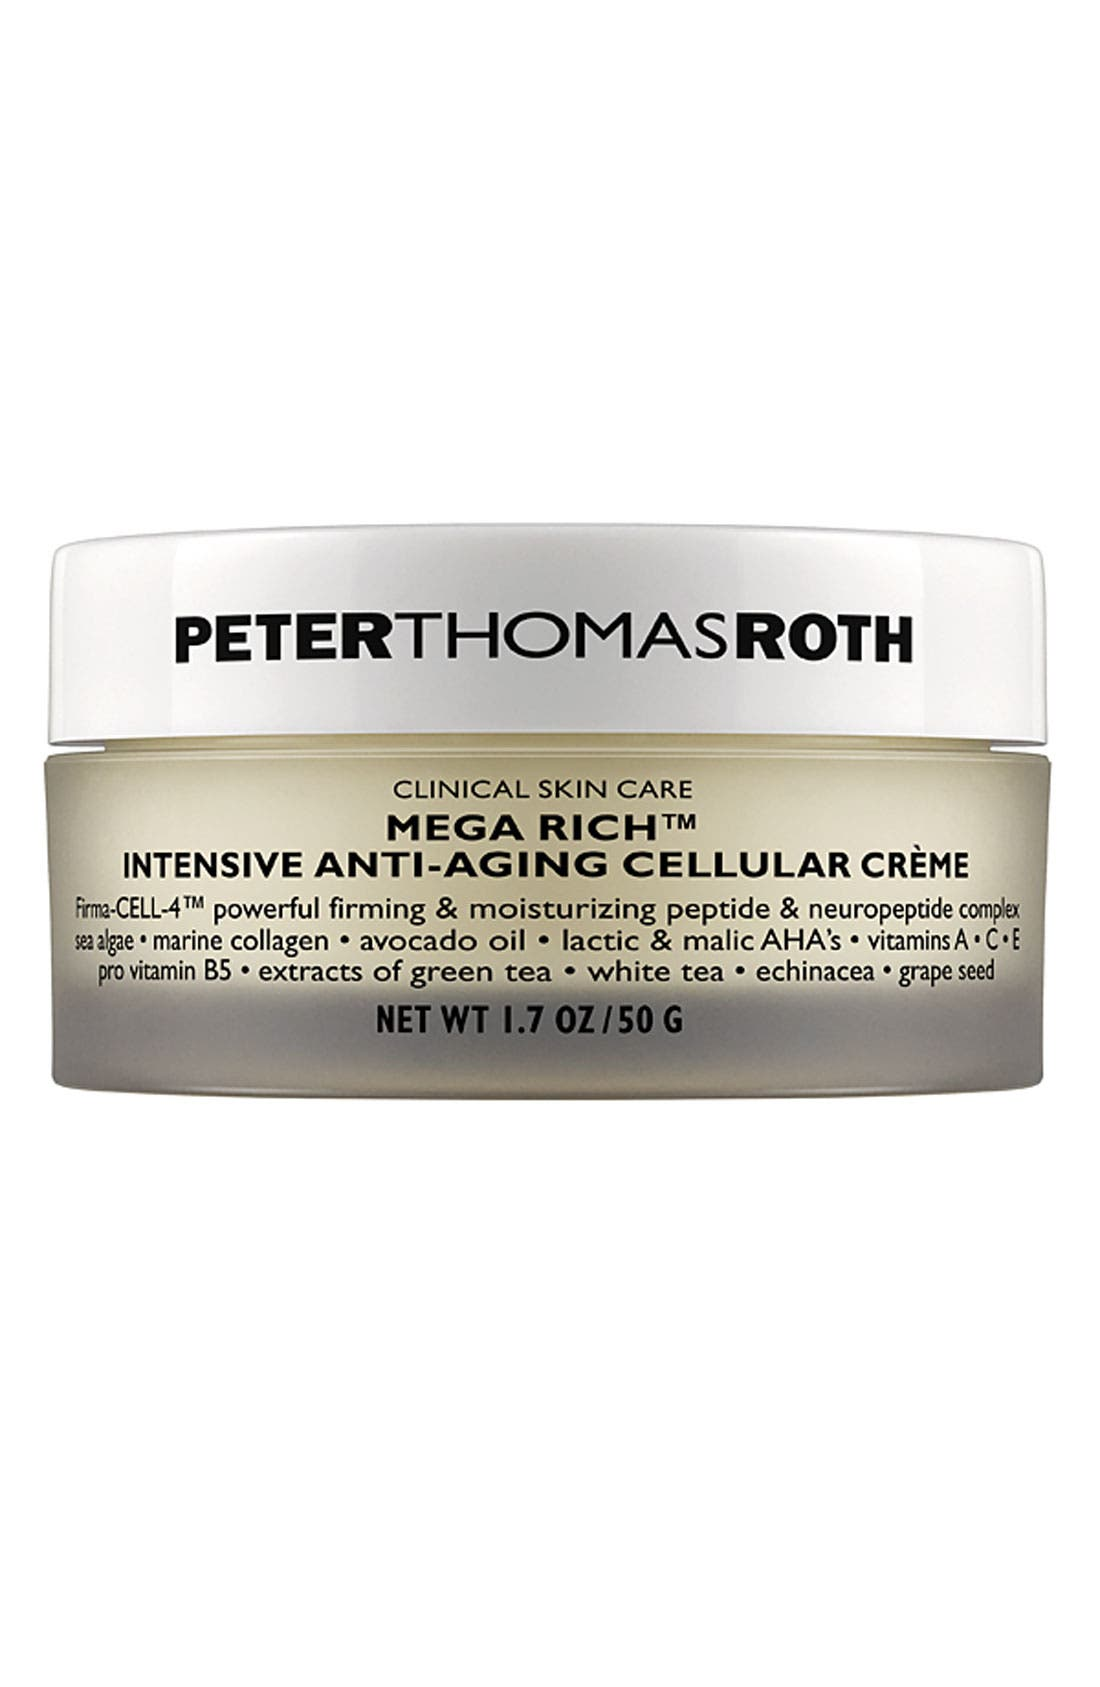 'Mega Rich' Intensive Anti-Aging Cellular Crème,                             Main thumbnail 1, color,                             NO COLOR